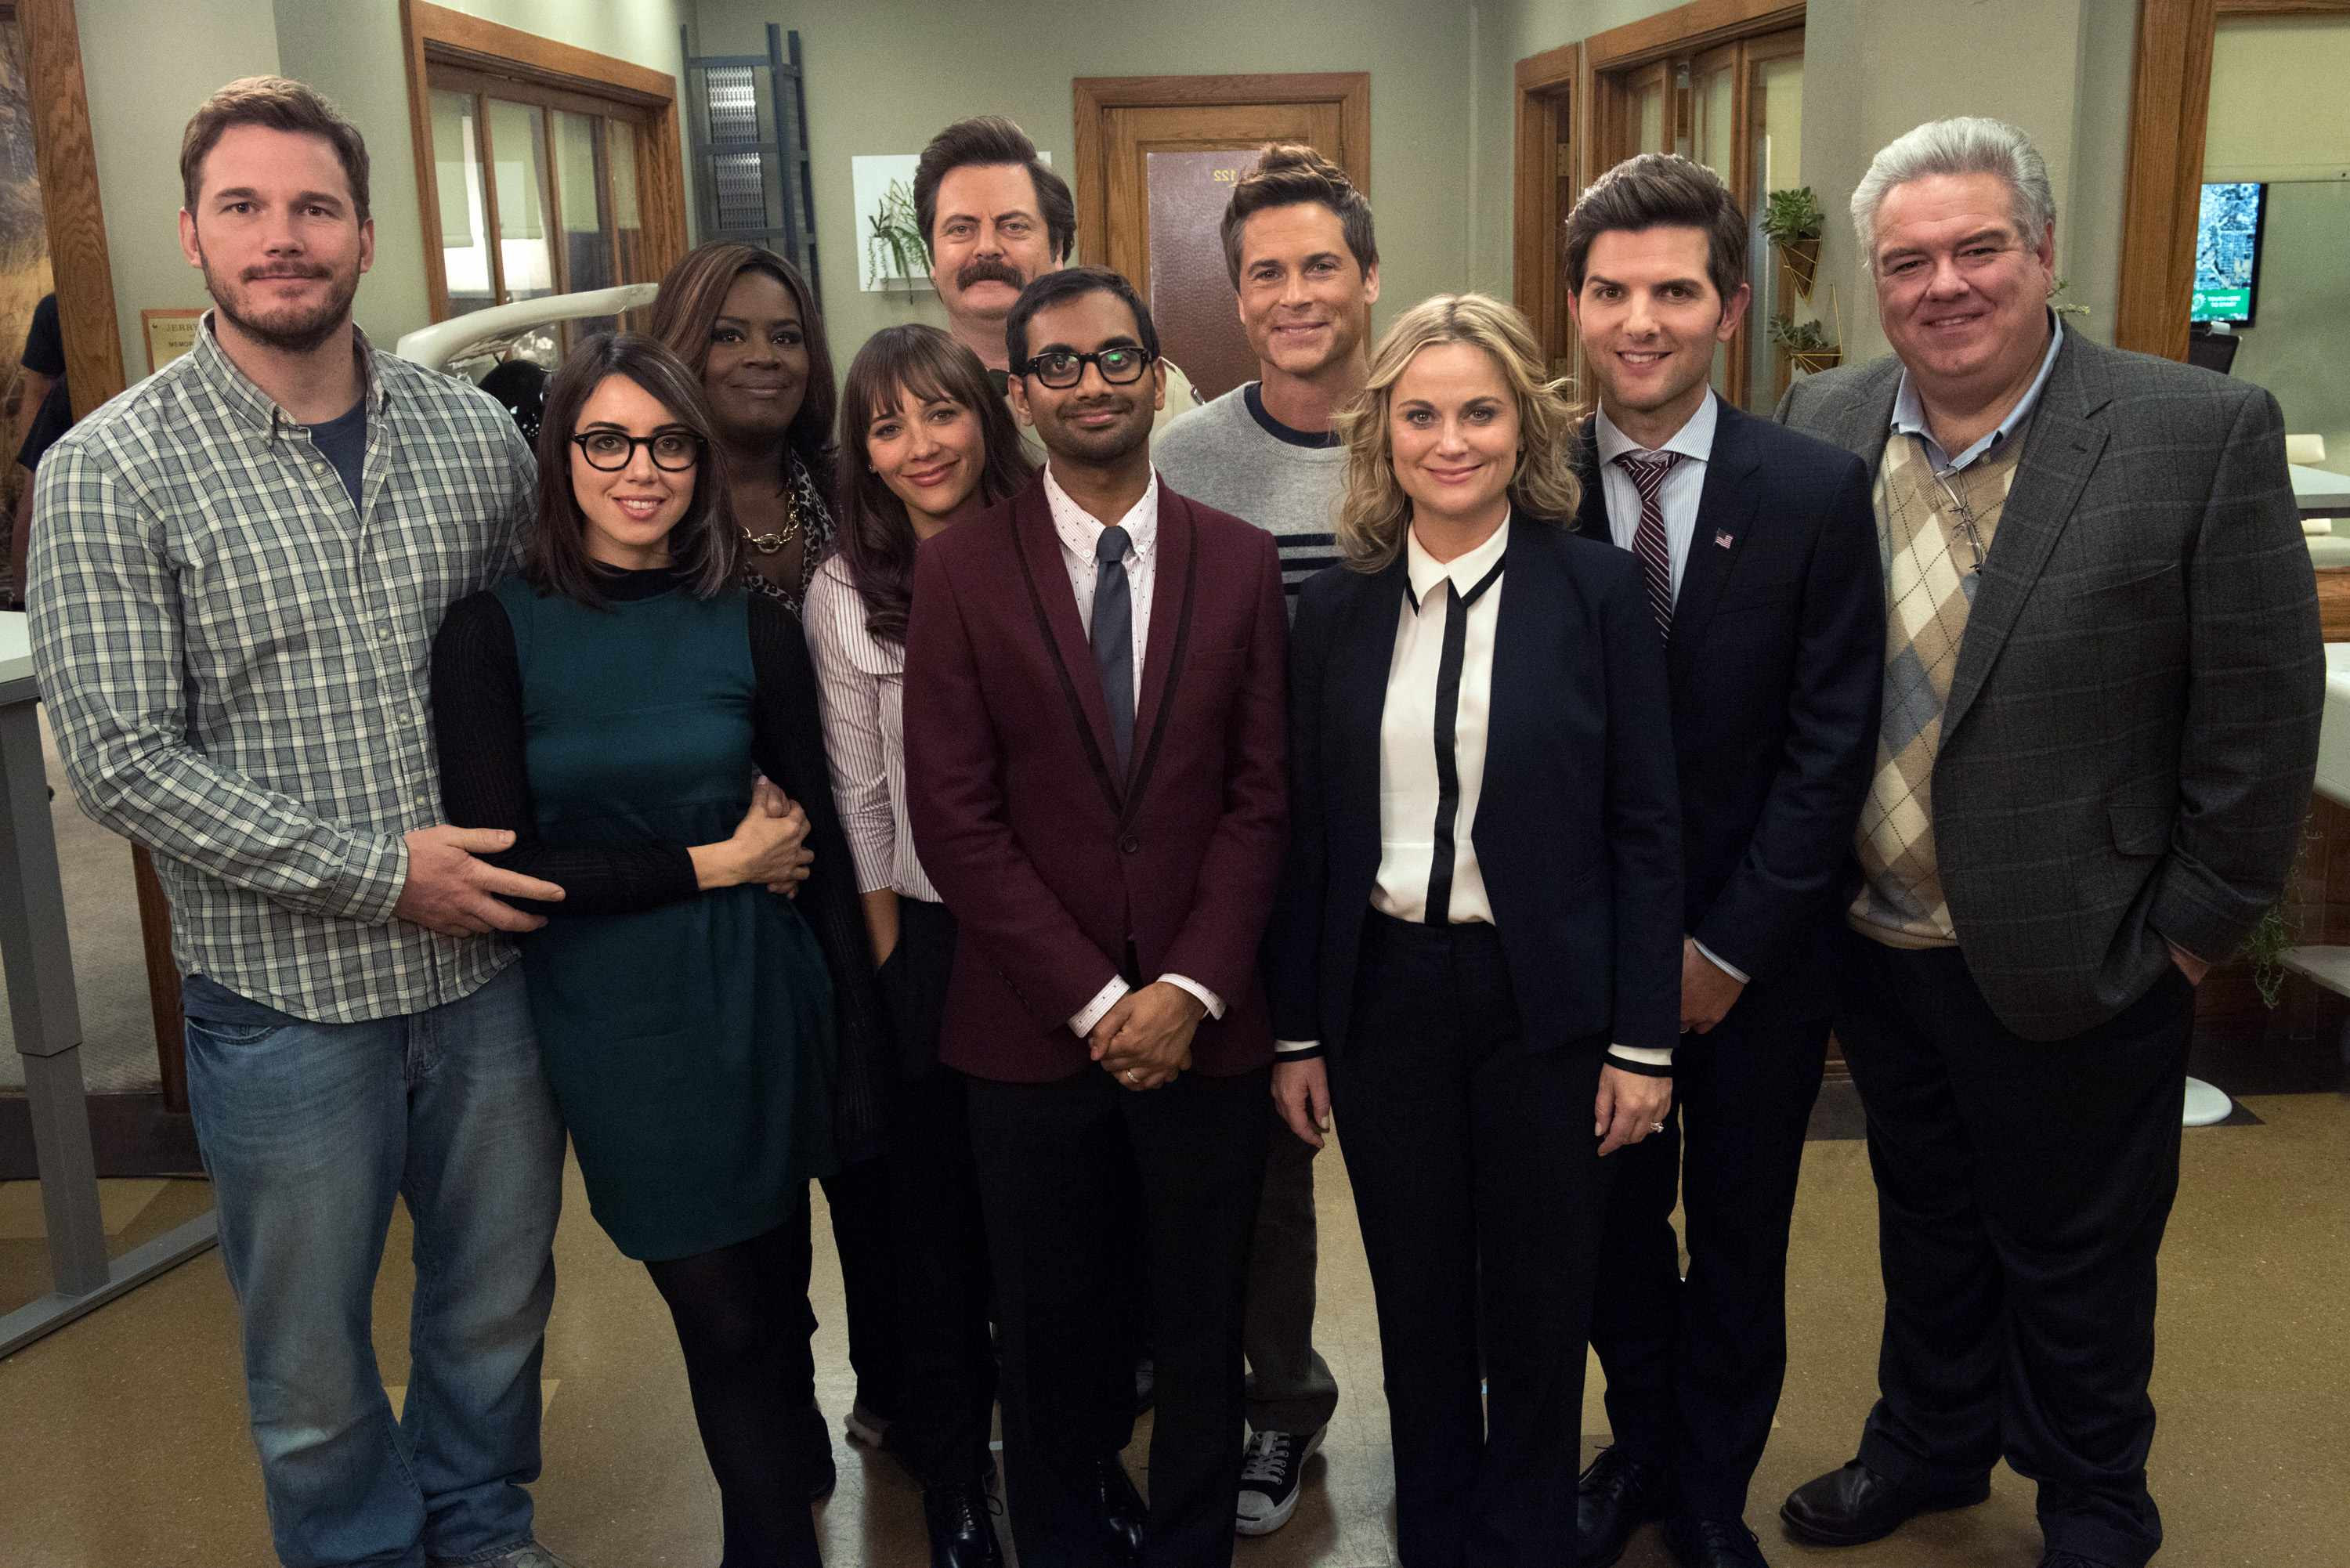 "PARKS AND RECREATION -- ""One Last Ride"" Episode 712/713 -- Pictured: (l-r) Chris Pratt as Andy Dwyer, Aubrey Plaza as April Ludgate, Retta as Donna Meagle, Rashida Jones as Ann Perkins, Nick Offerman as Ron Swanson, Aziz Ansari as Tom Haverford, Rob Lowe as Chris Traeger, Amy Poehler as Leslie Knope, Adam Scott as Ben Wyatt, Jim O'Heir as Garry Gergich -- (Photo by: Colleen Hayes/NBC/NBCU Photo Bank via Getty Images) TL"